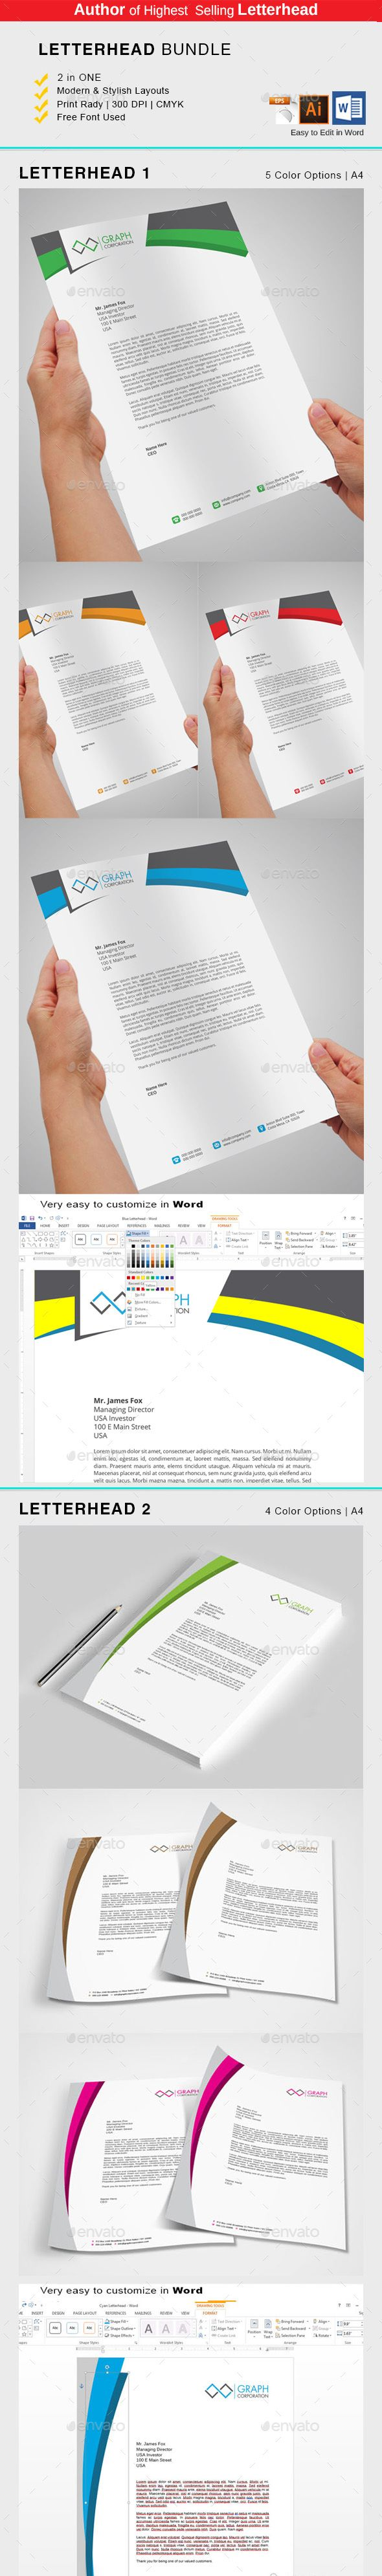 letter format example 25 best ideas about letterhead template on 4896